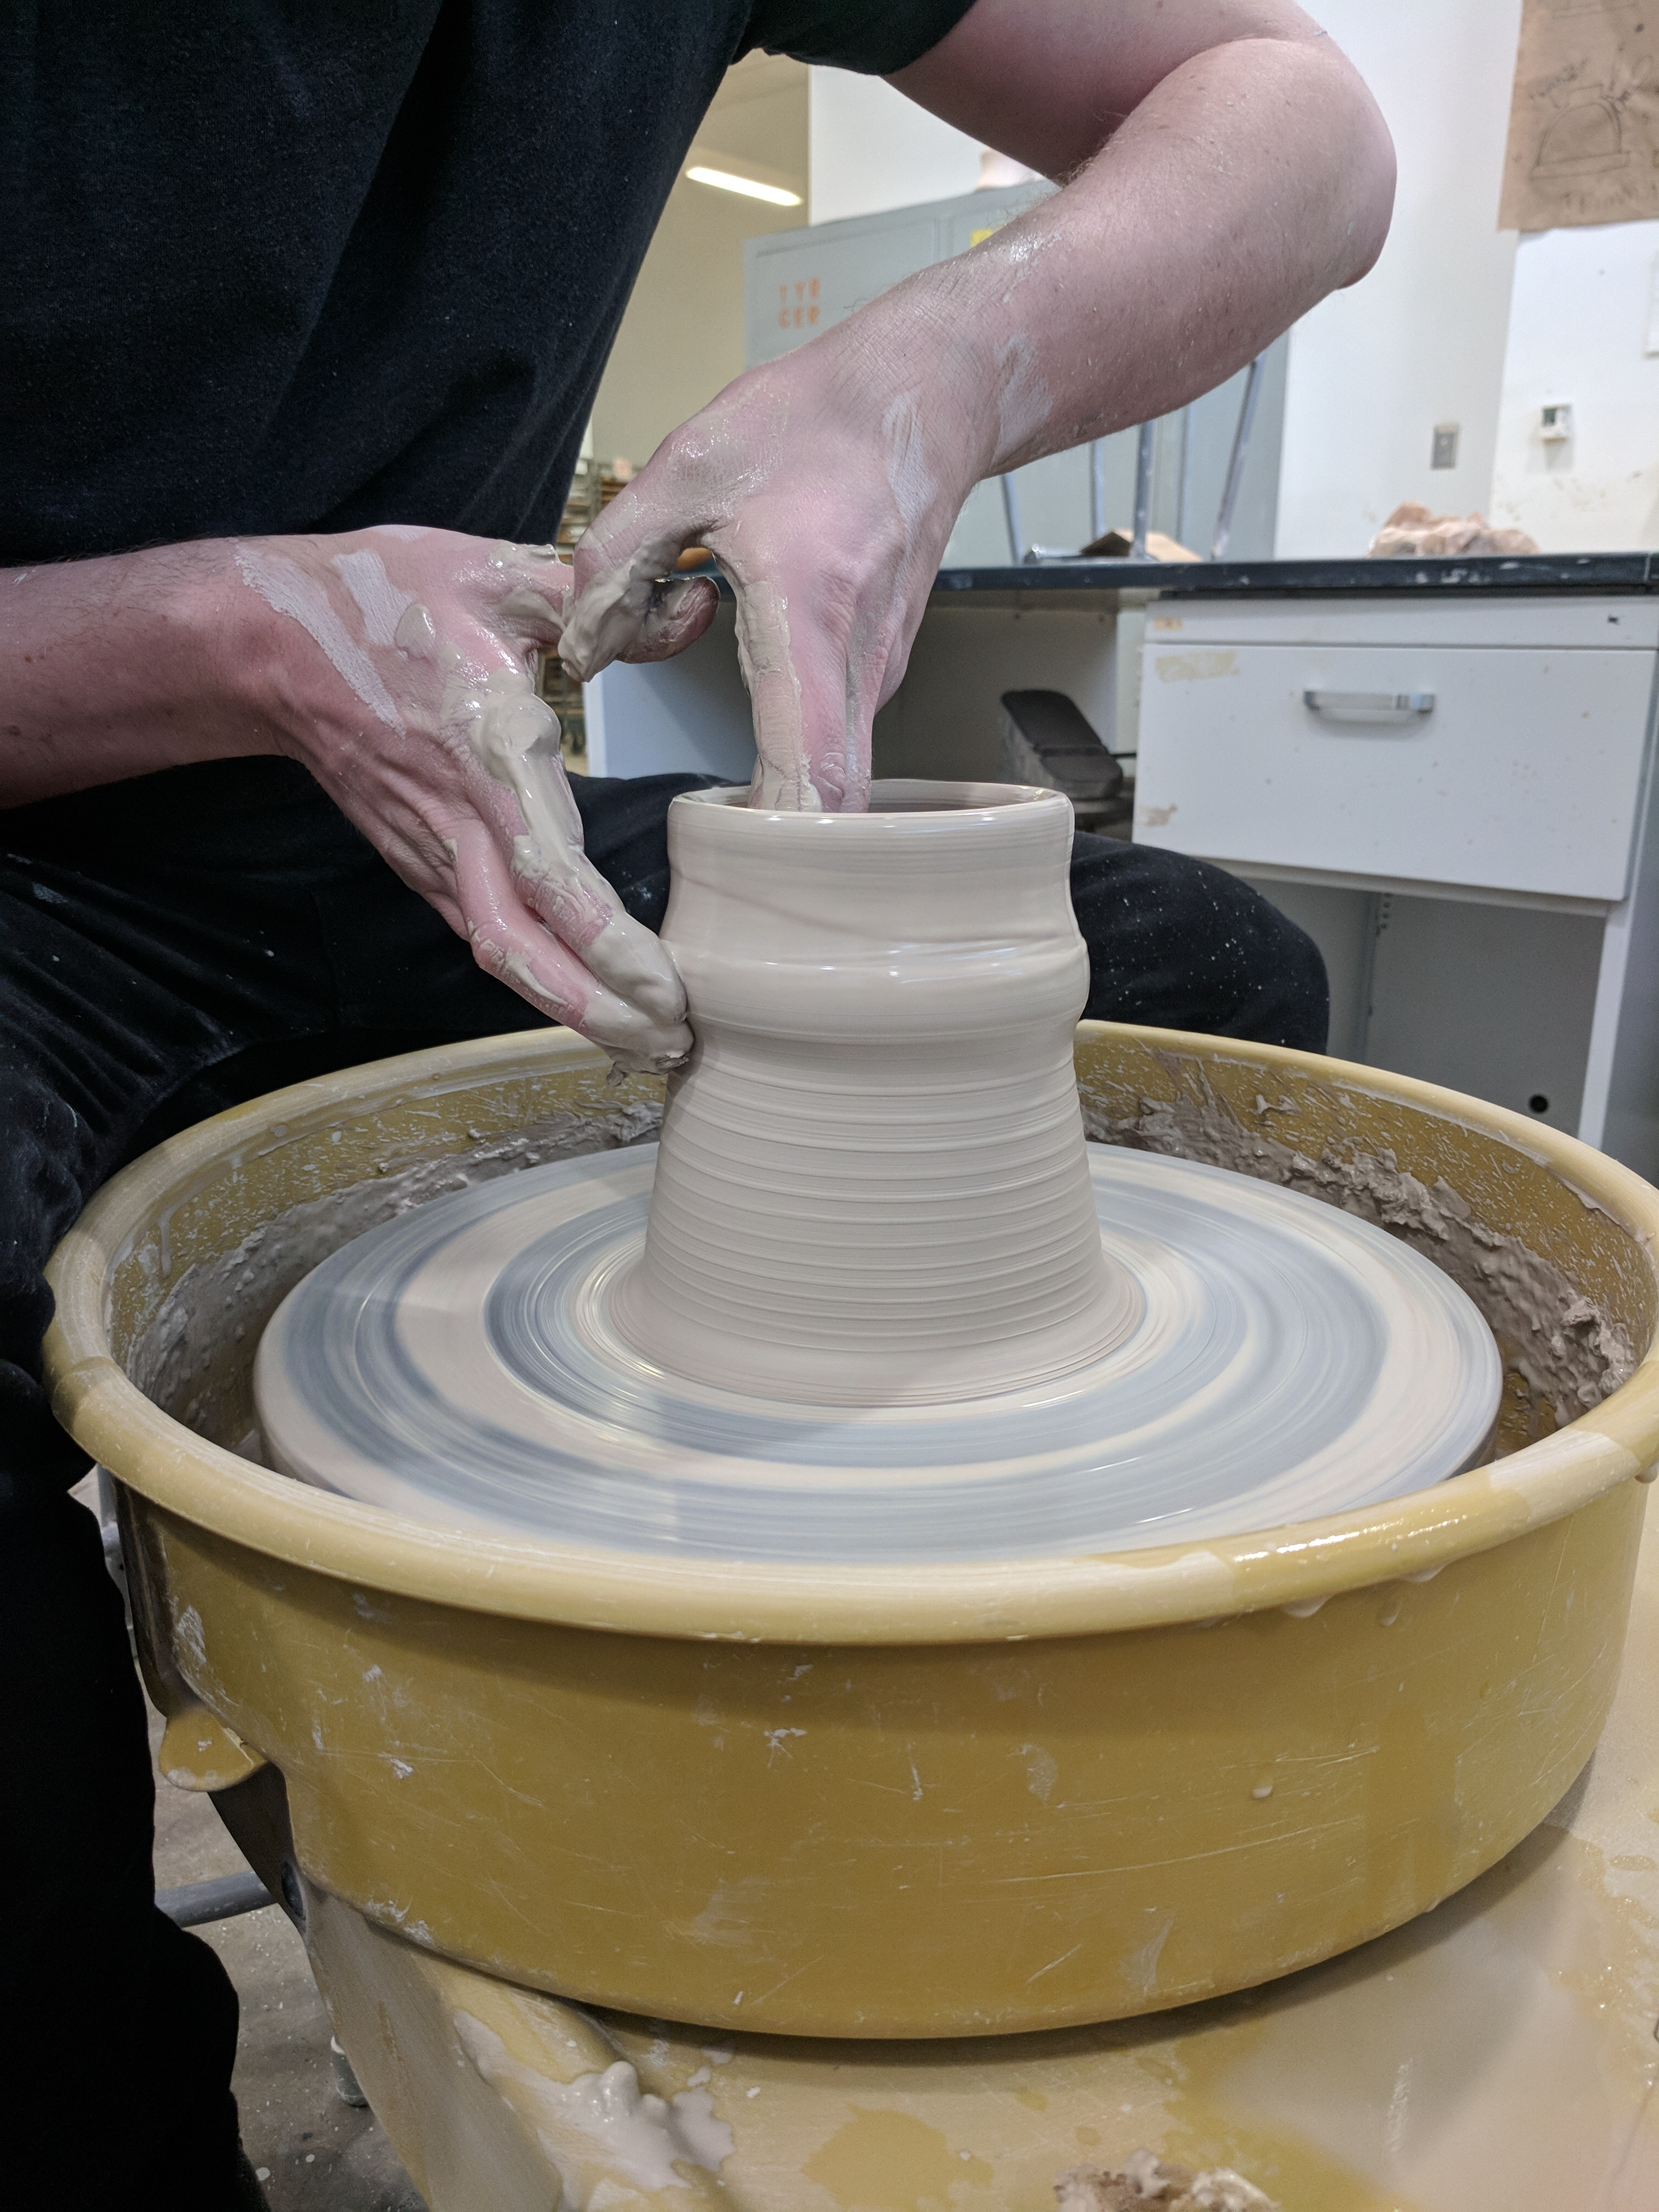 Picture of Slow the Wheel As the Cylinder Gets Taller